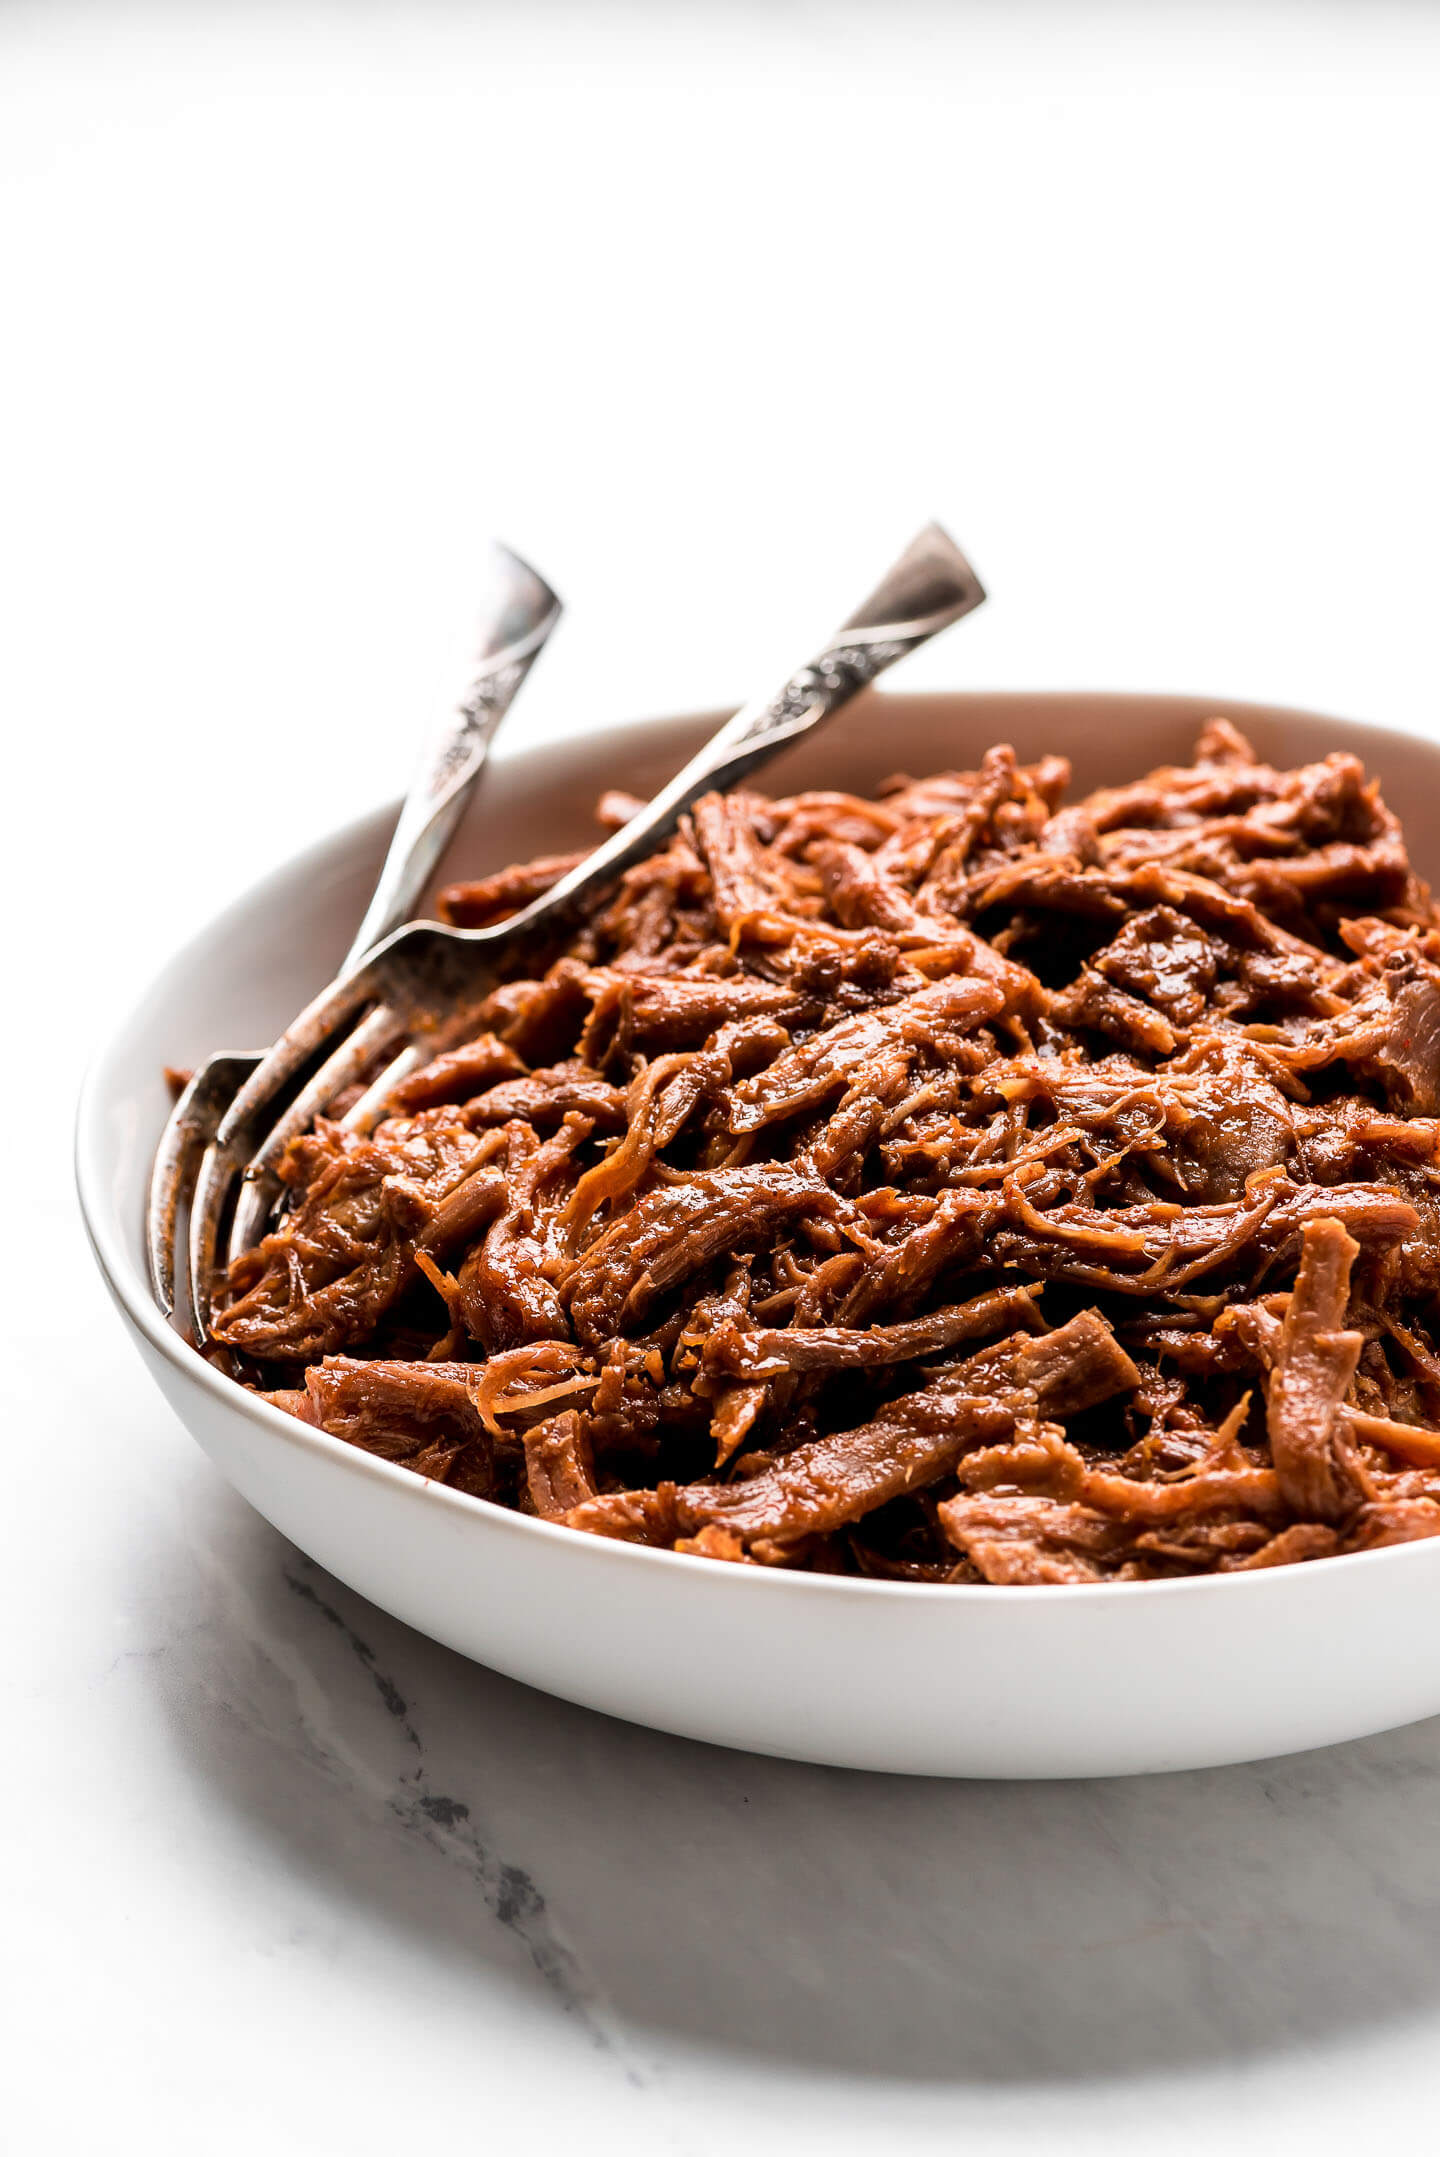 Shredded pork covered in a sauce in a bowl with two forks in the side of the bowl.